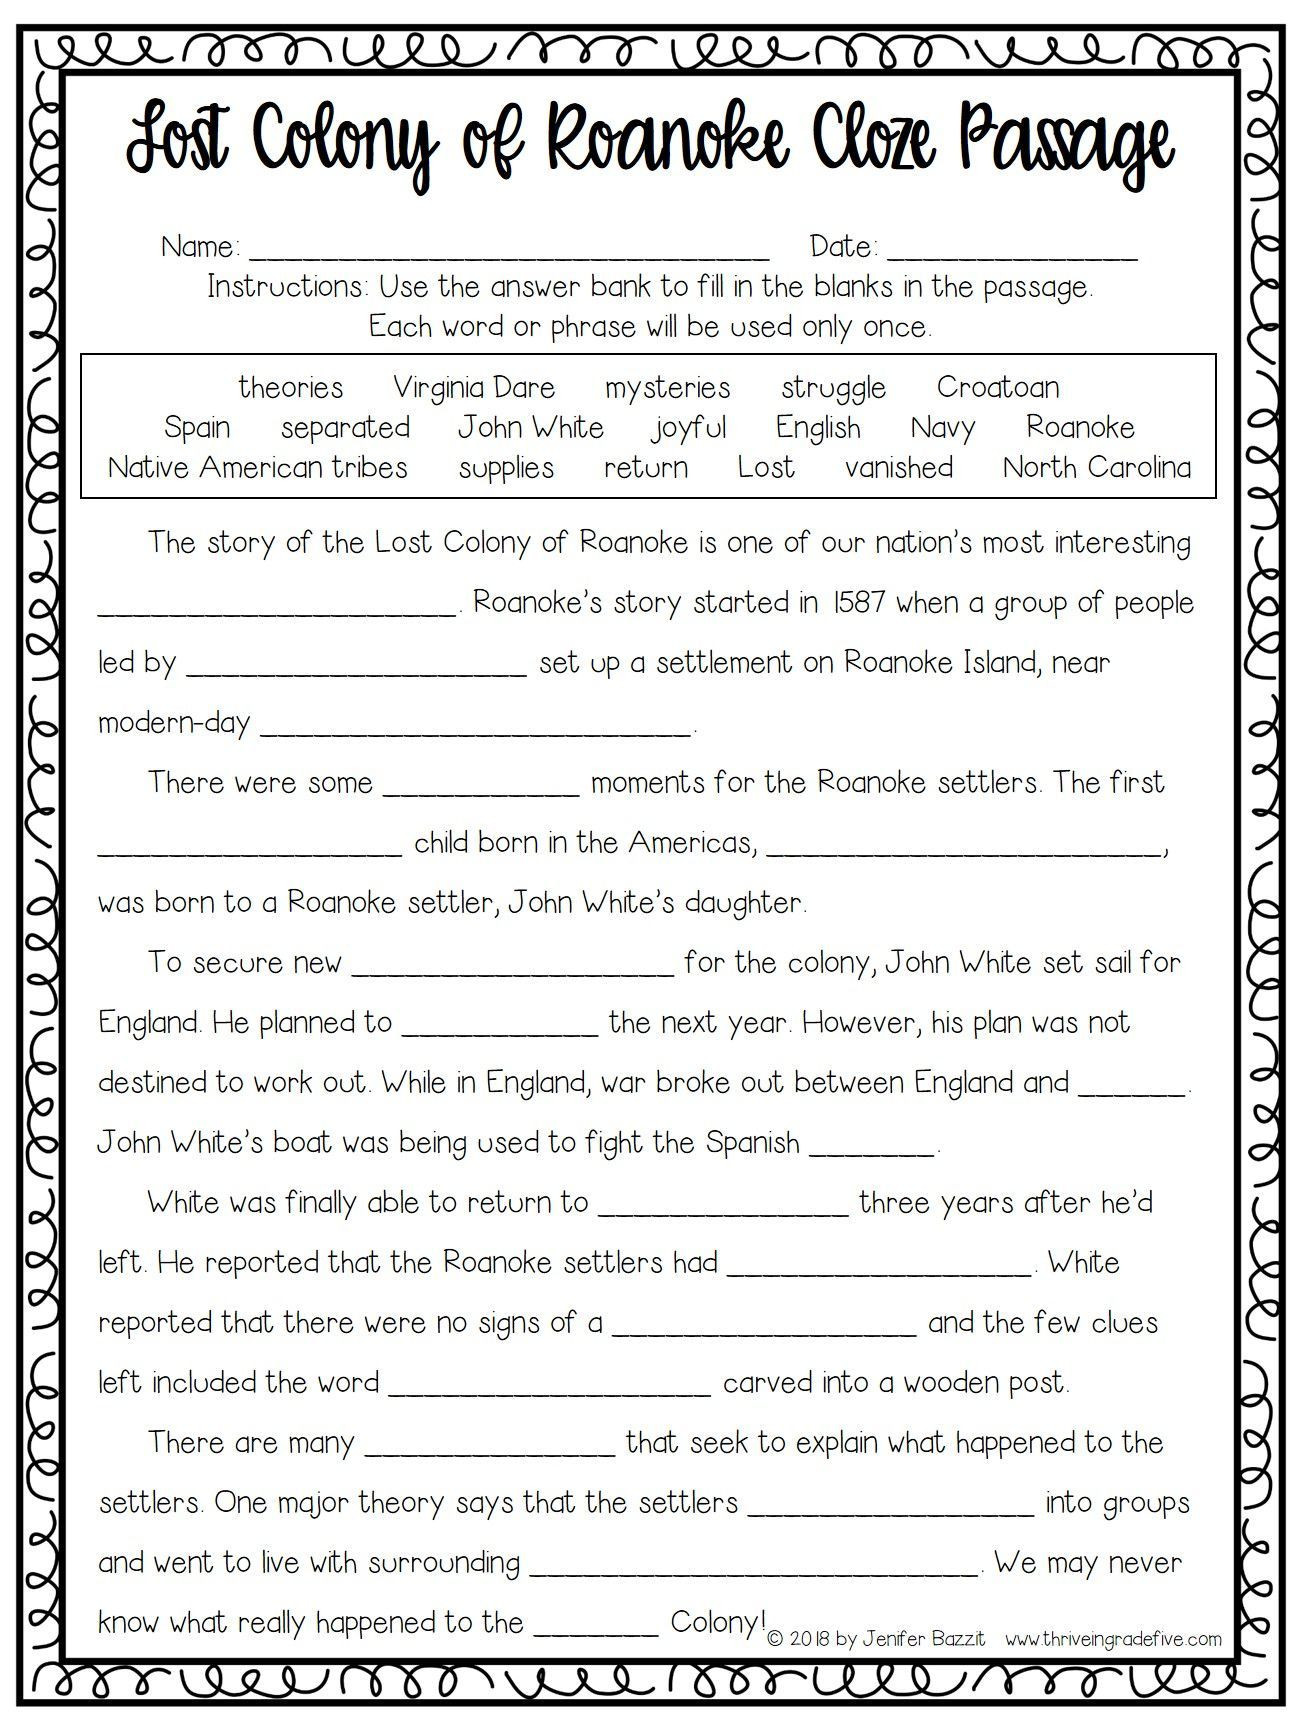 8th Grade social Studies Worksheets Lost Colony Of Roanoke Activity Free